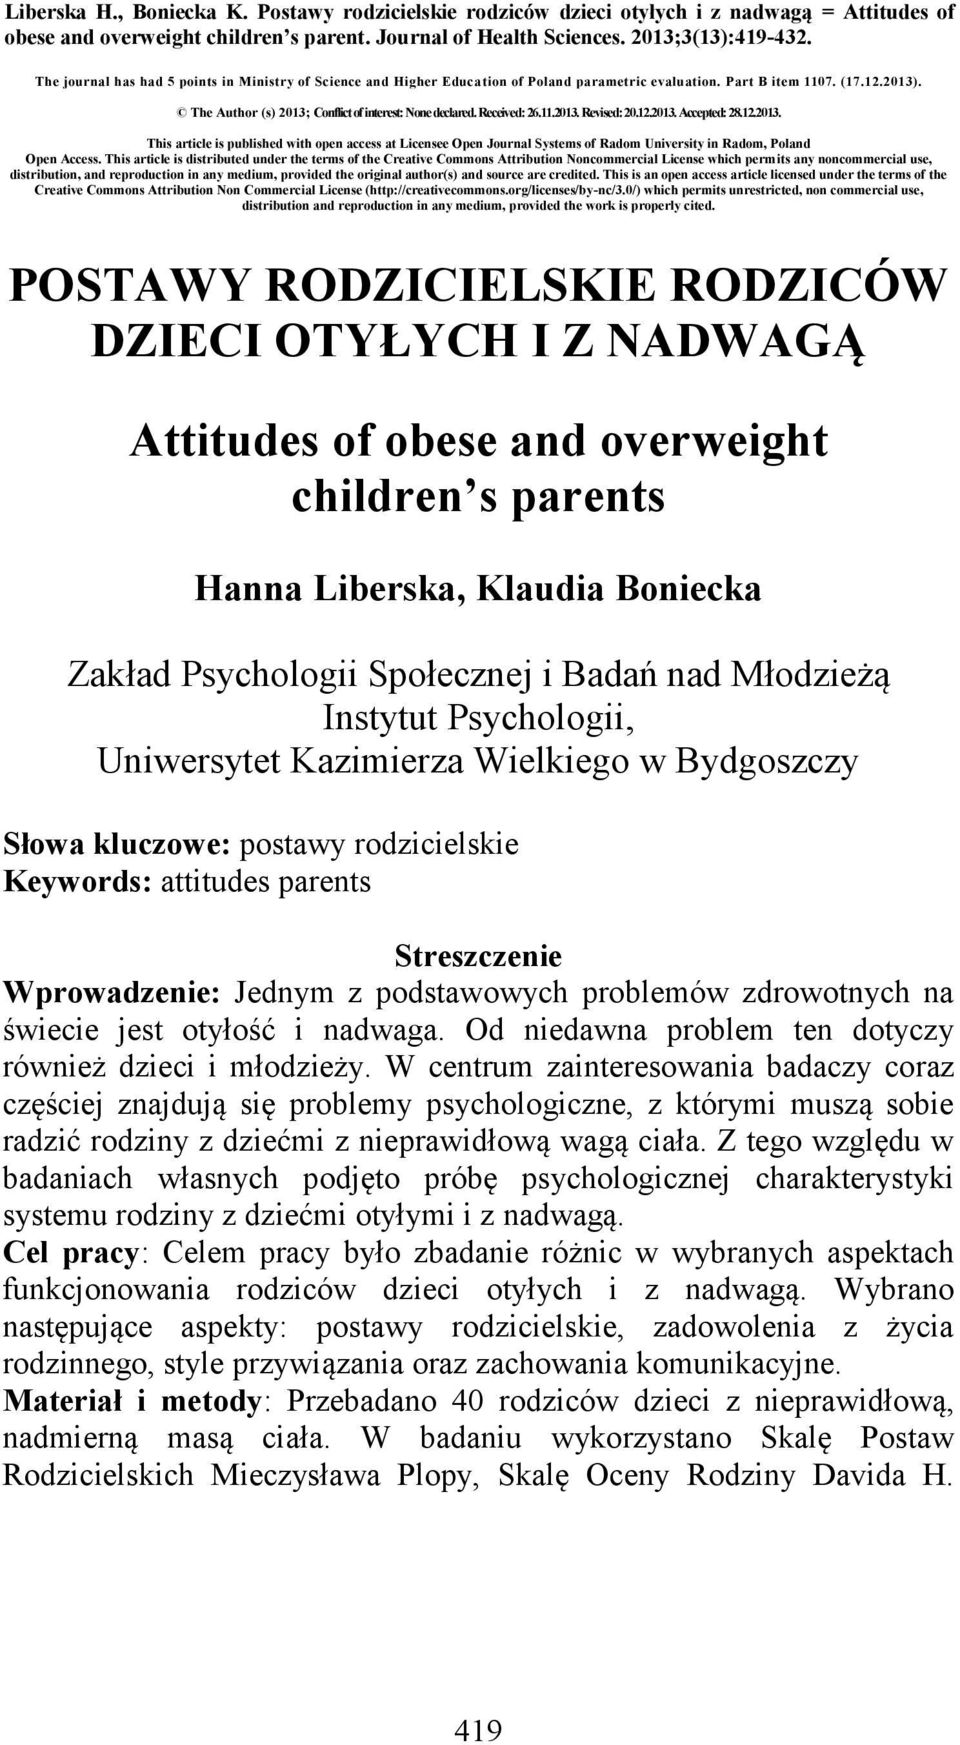 Received: 26.11.2013. Revised: 20.12.2013. Accepted: 28.12.2013. This article is published with open access at Licensee Open Journal Systems of Radom University in Radom, Poland Open Access.